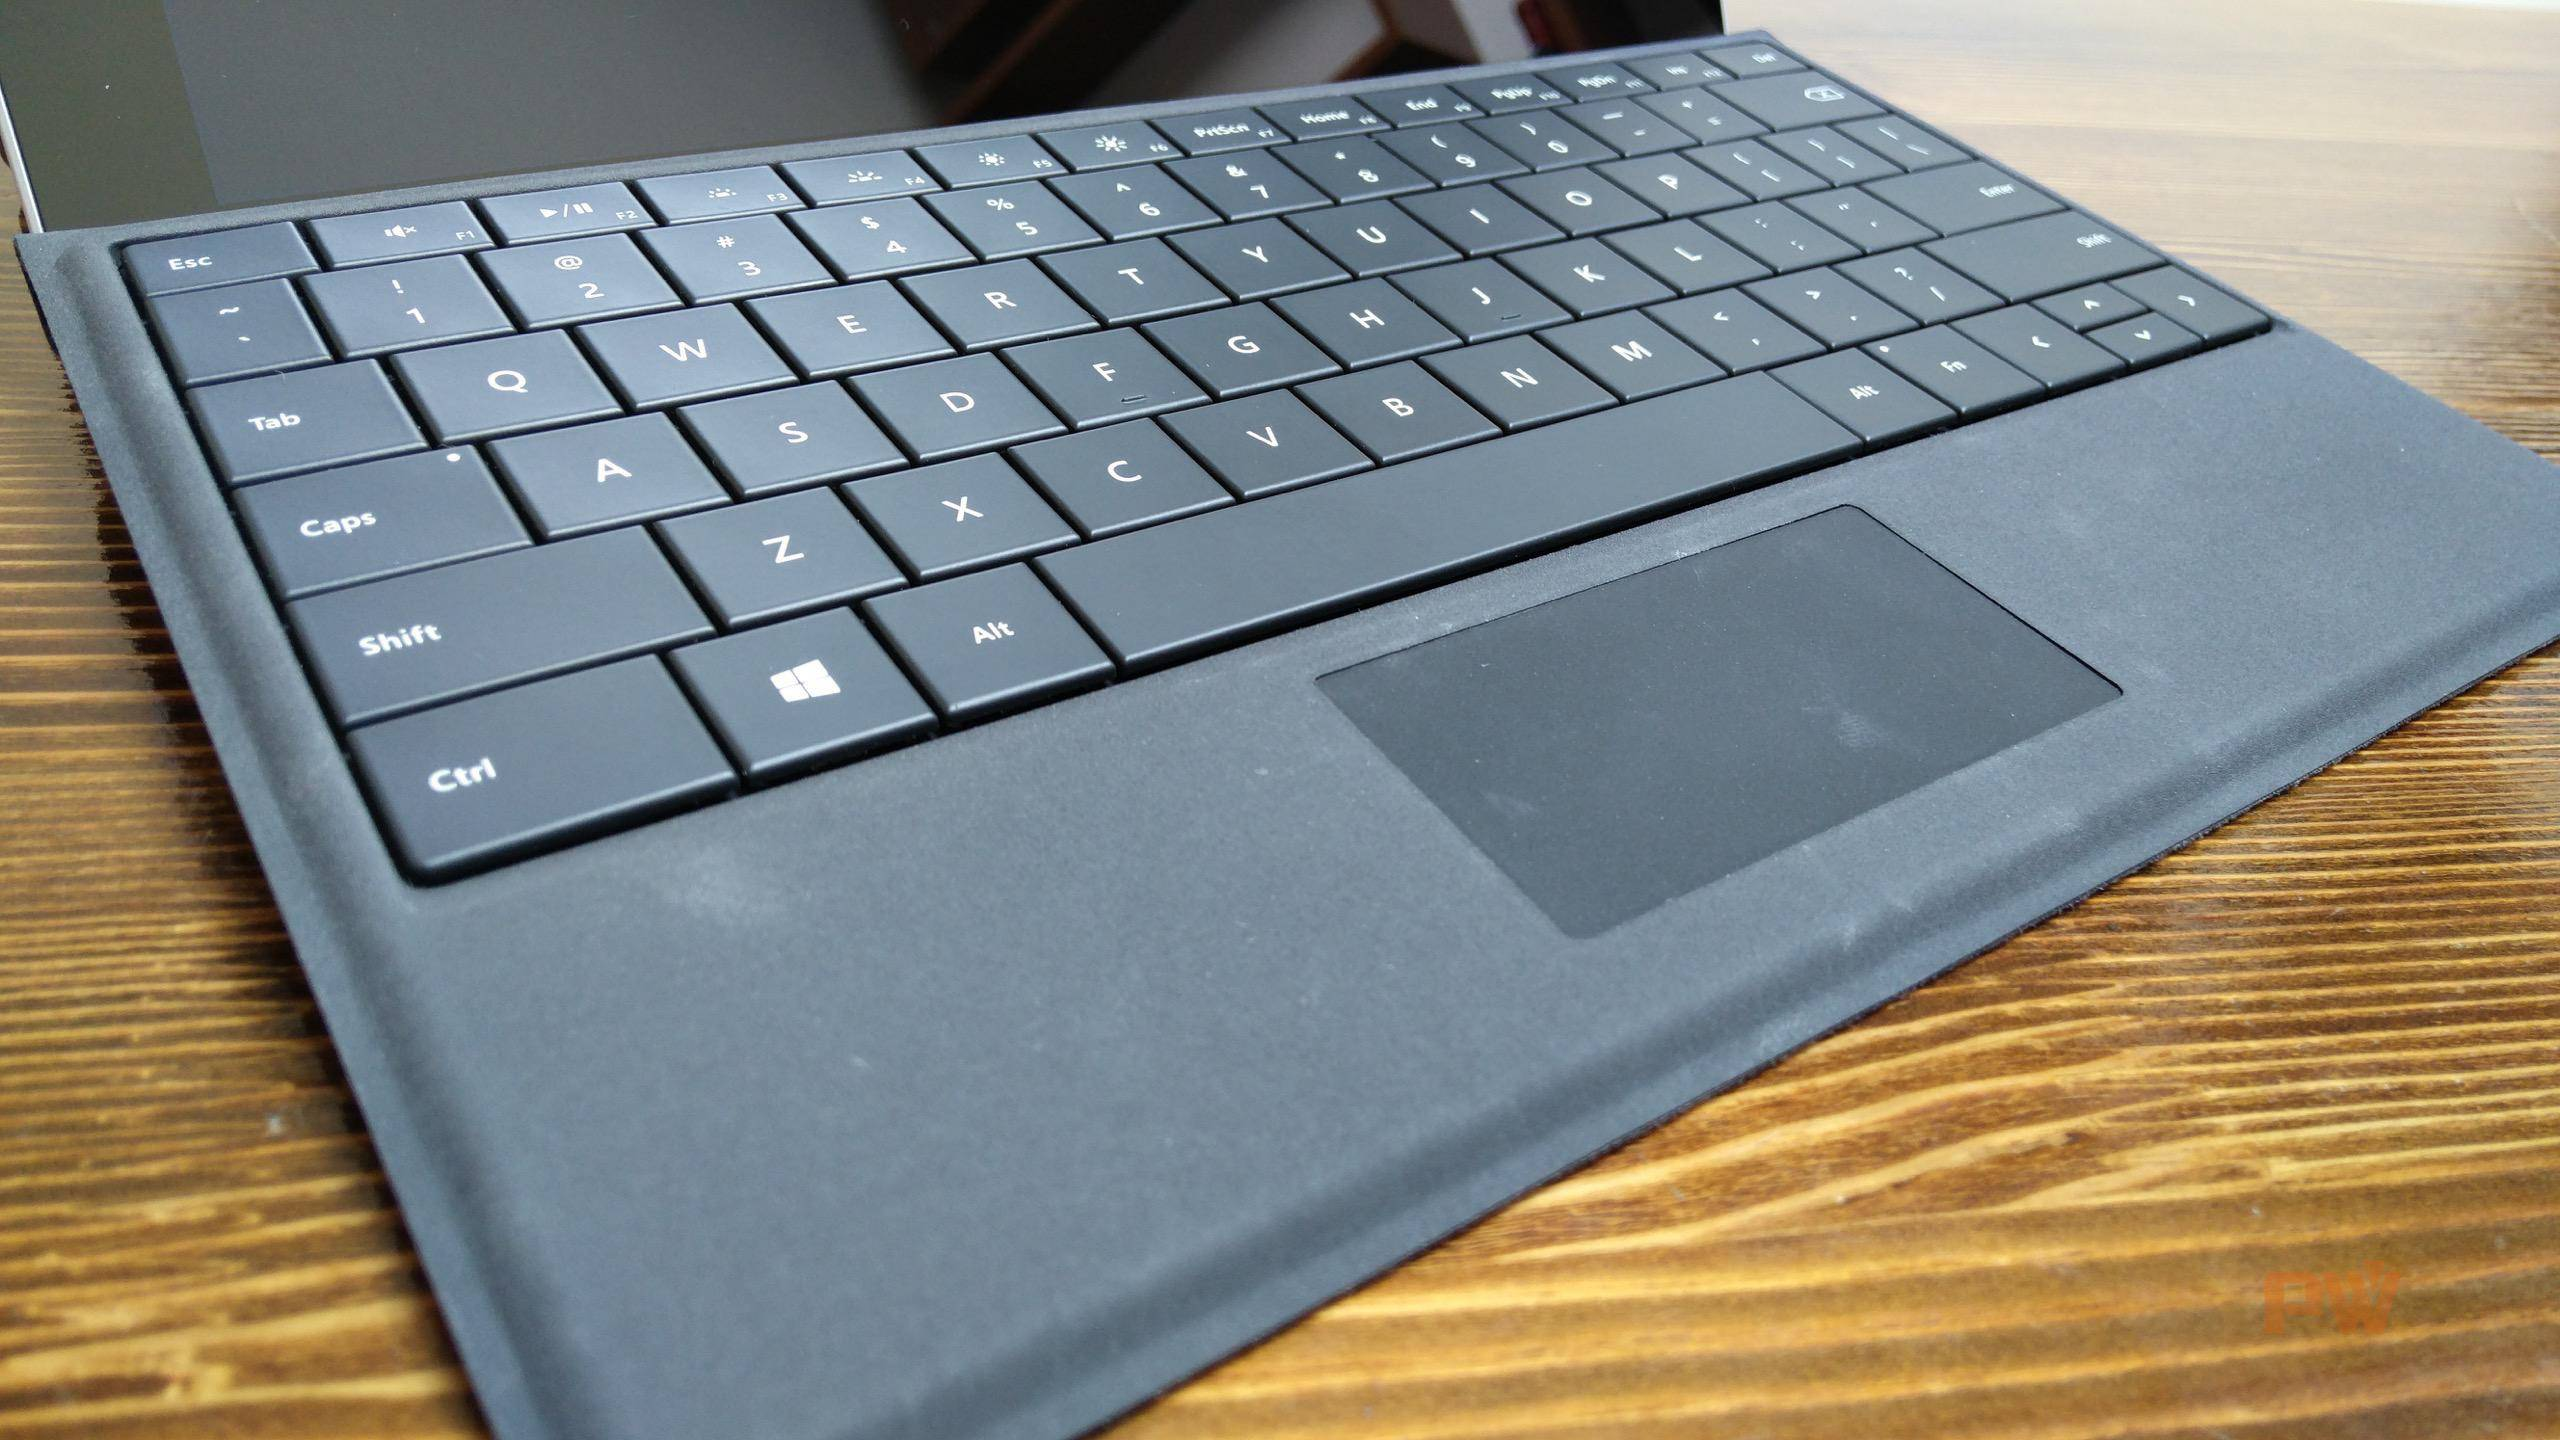 surface-3-keyboard-trackpad